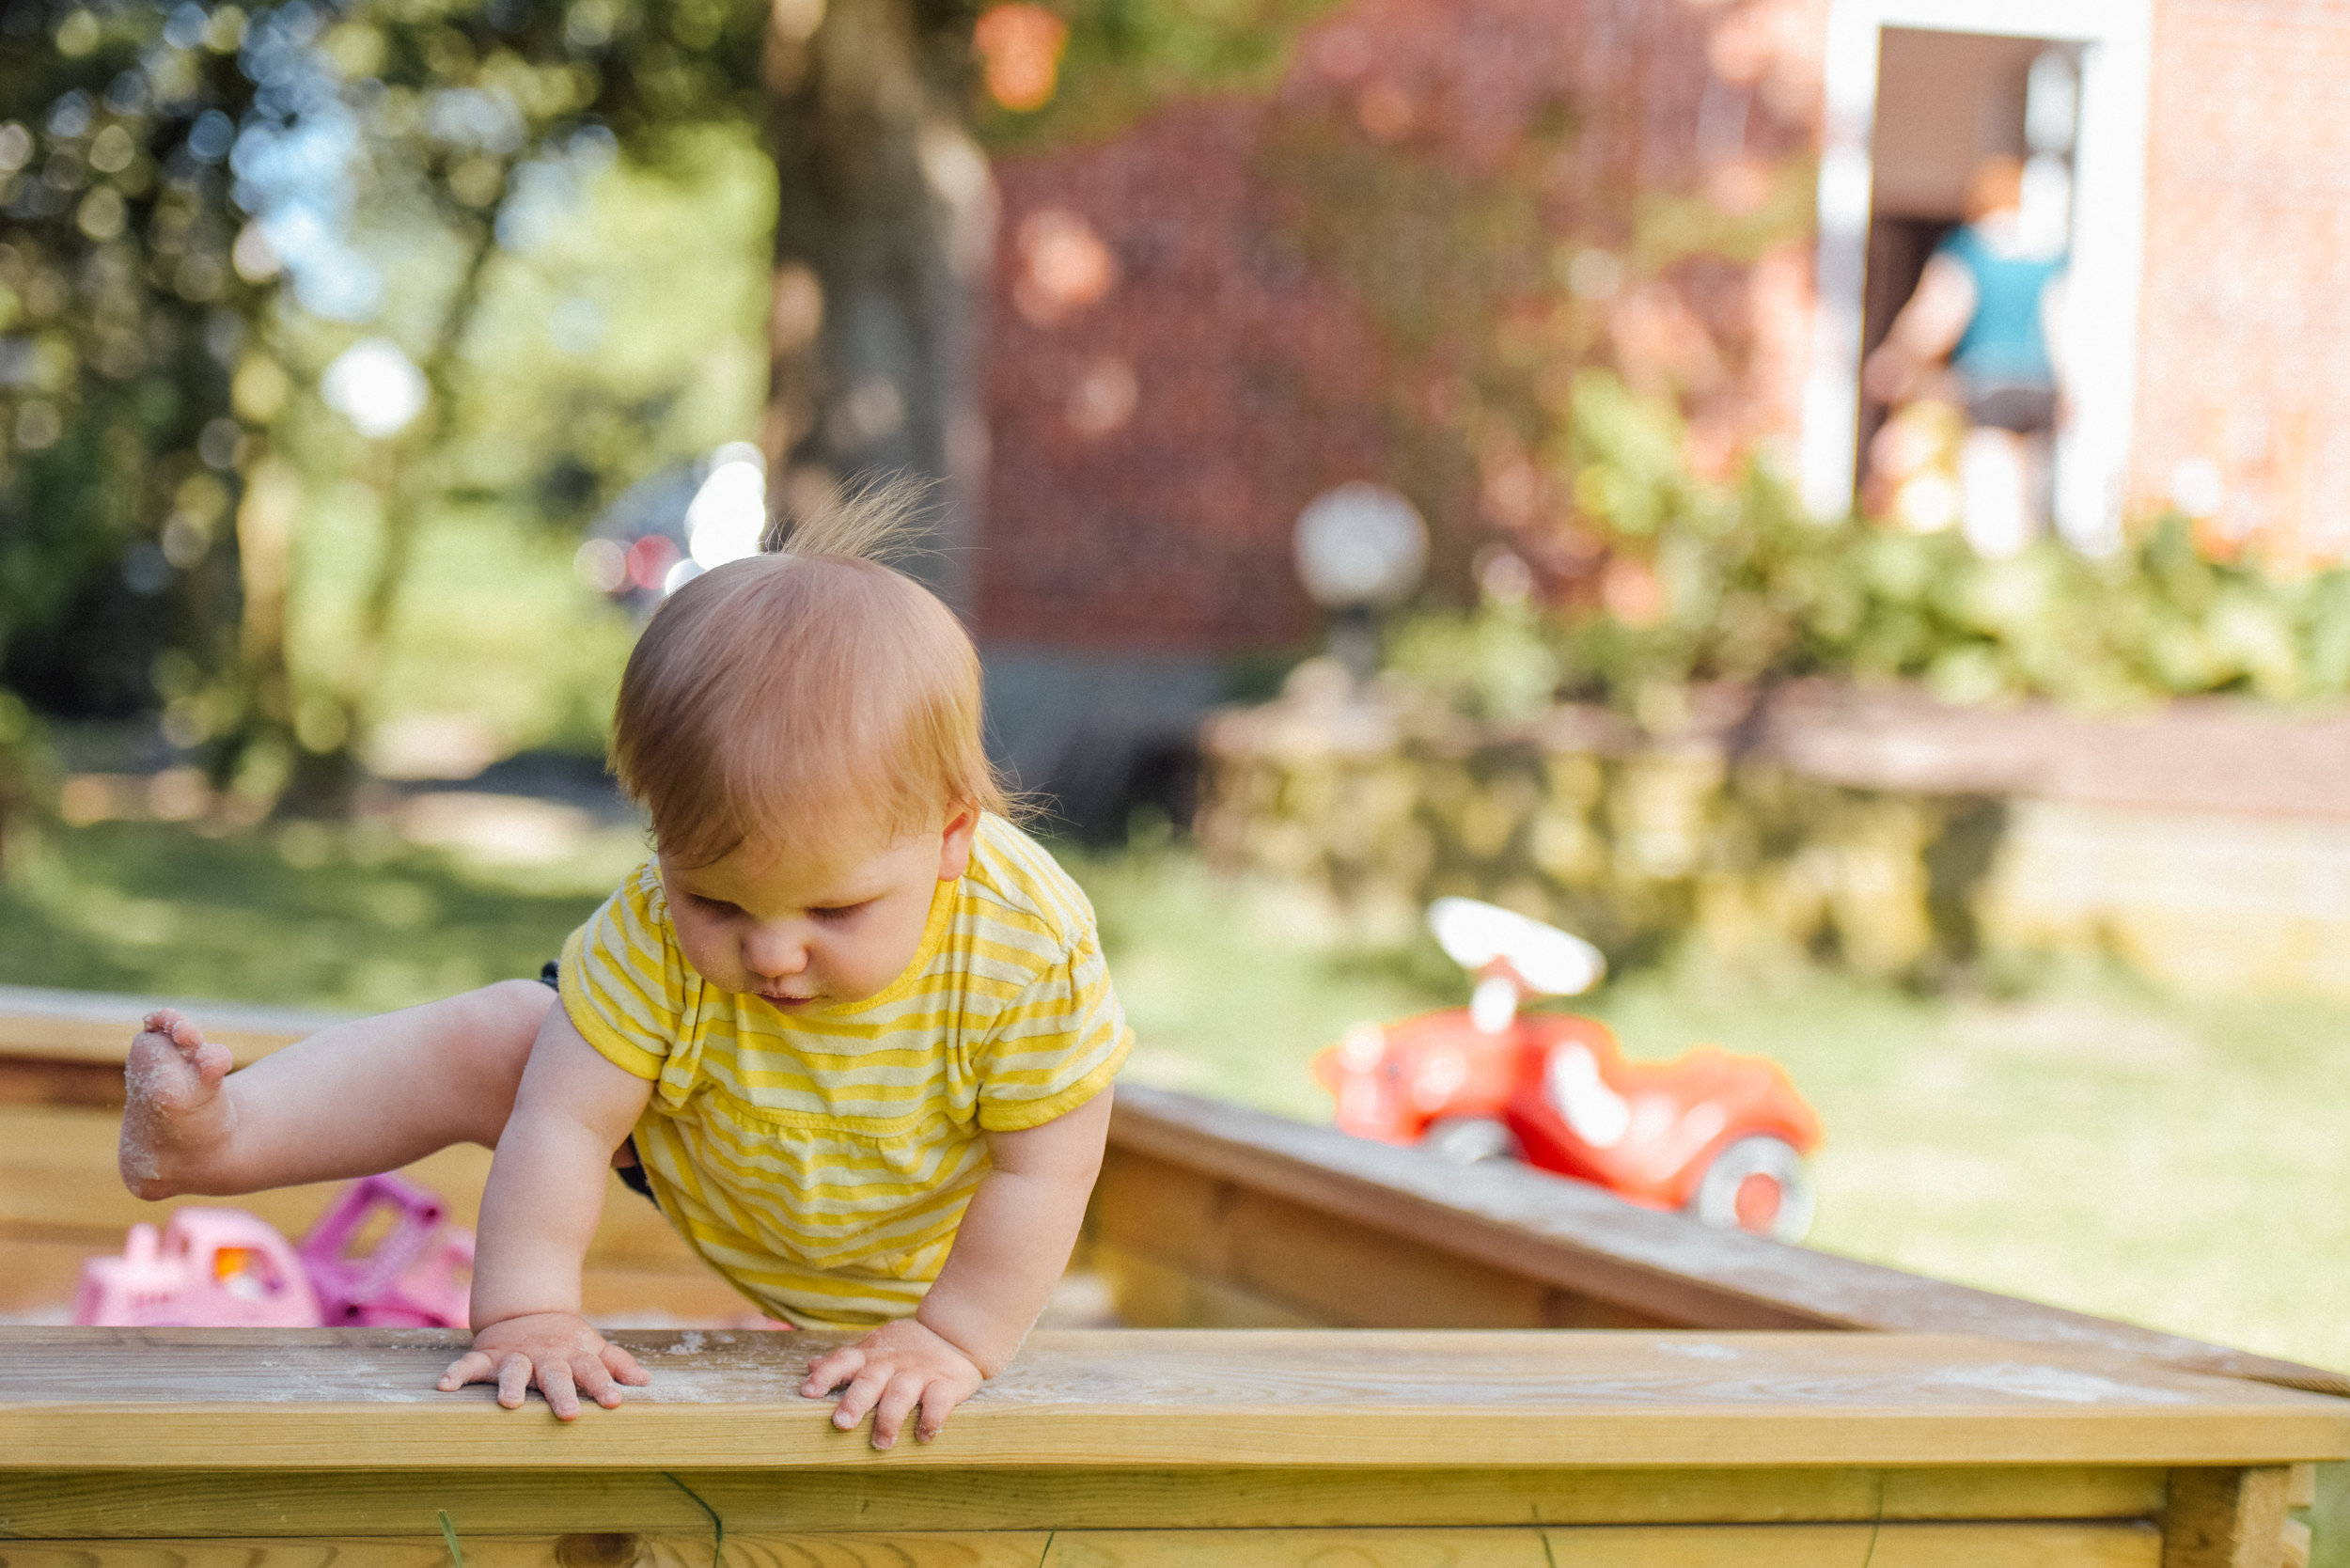 """Child Custody - Everyone wants what is best for their children. However, oftentimes parents cannot agree. In such a case, the Court will decide custody based on """"the best interests of the child"""" factors."""